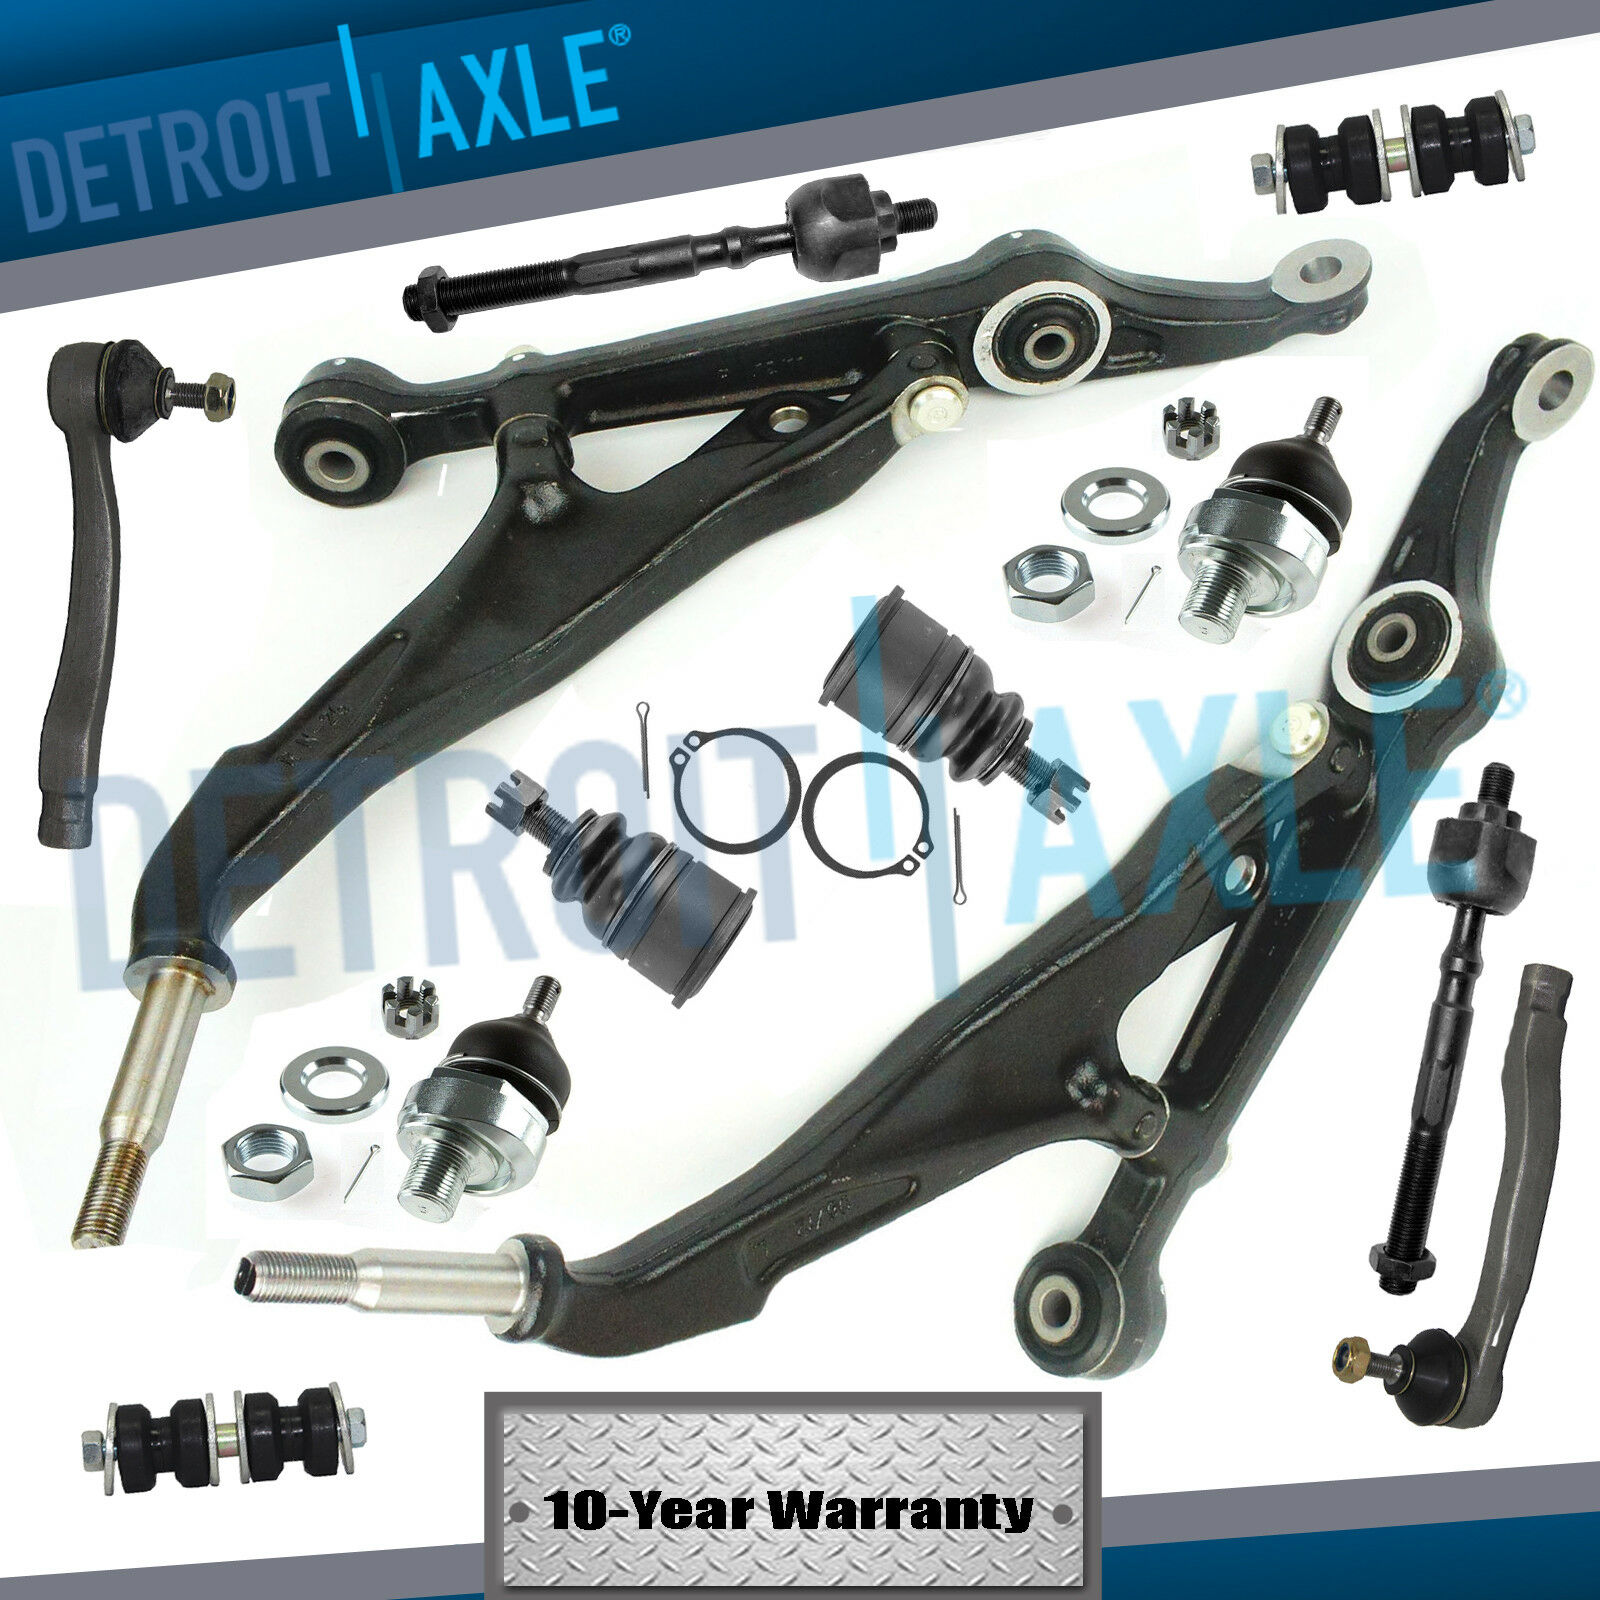 INTEGRA TIE RODS,BALL JOINT,UPPER CONTROL ARMS 1998-2001